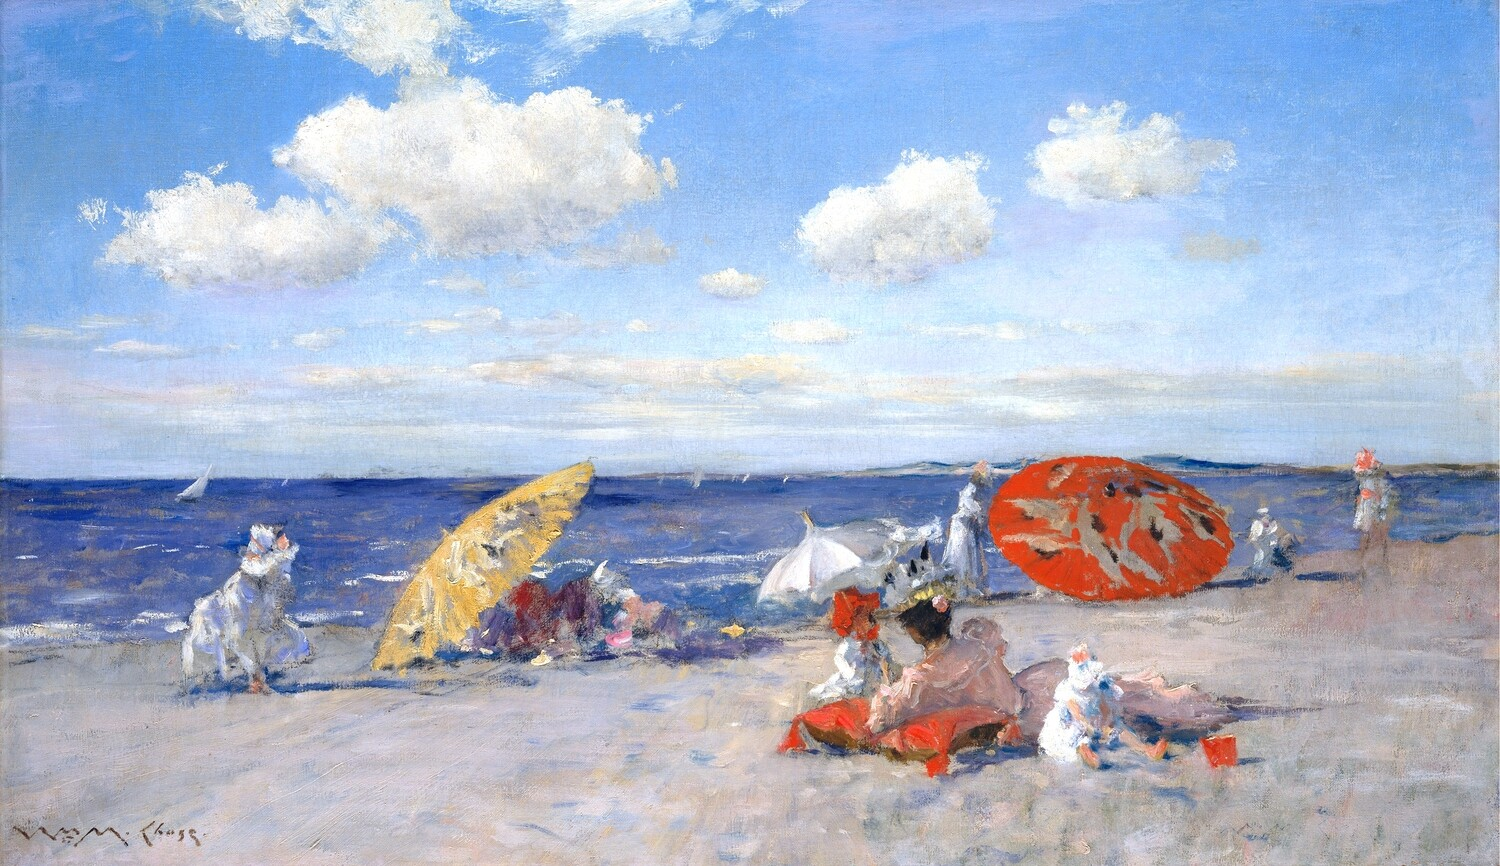 William Chase   At the Seaside 1892